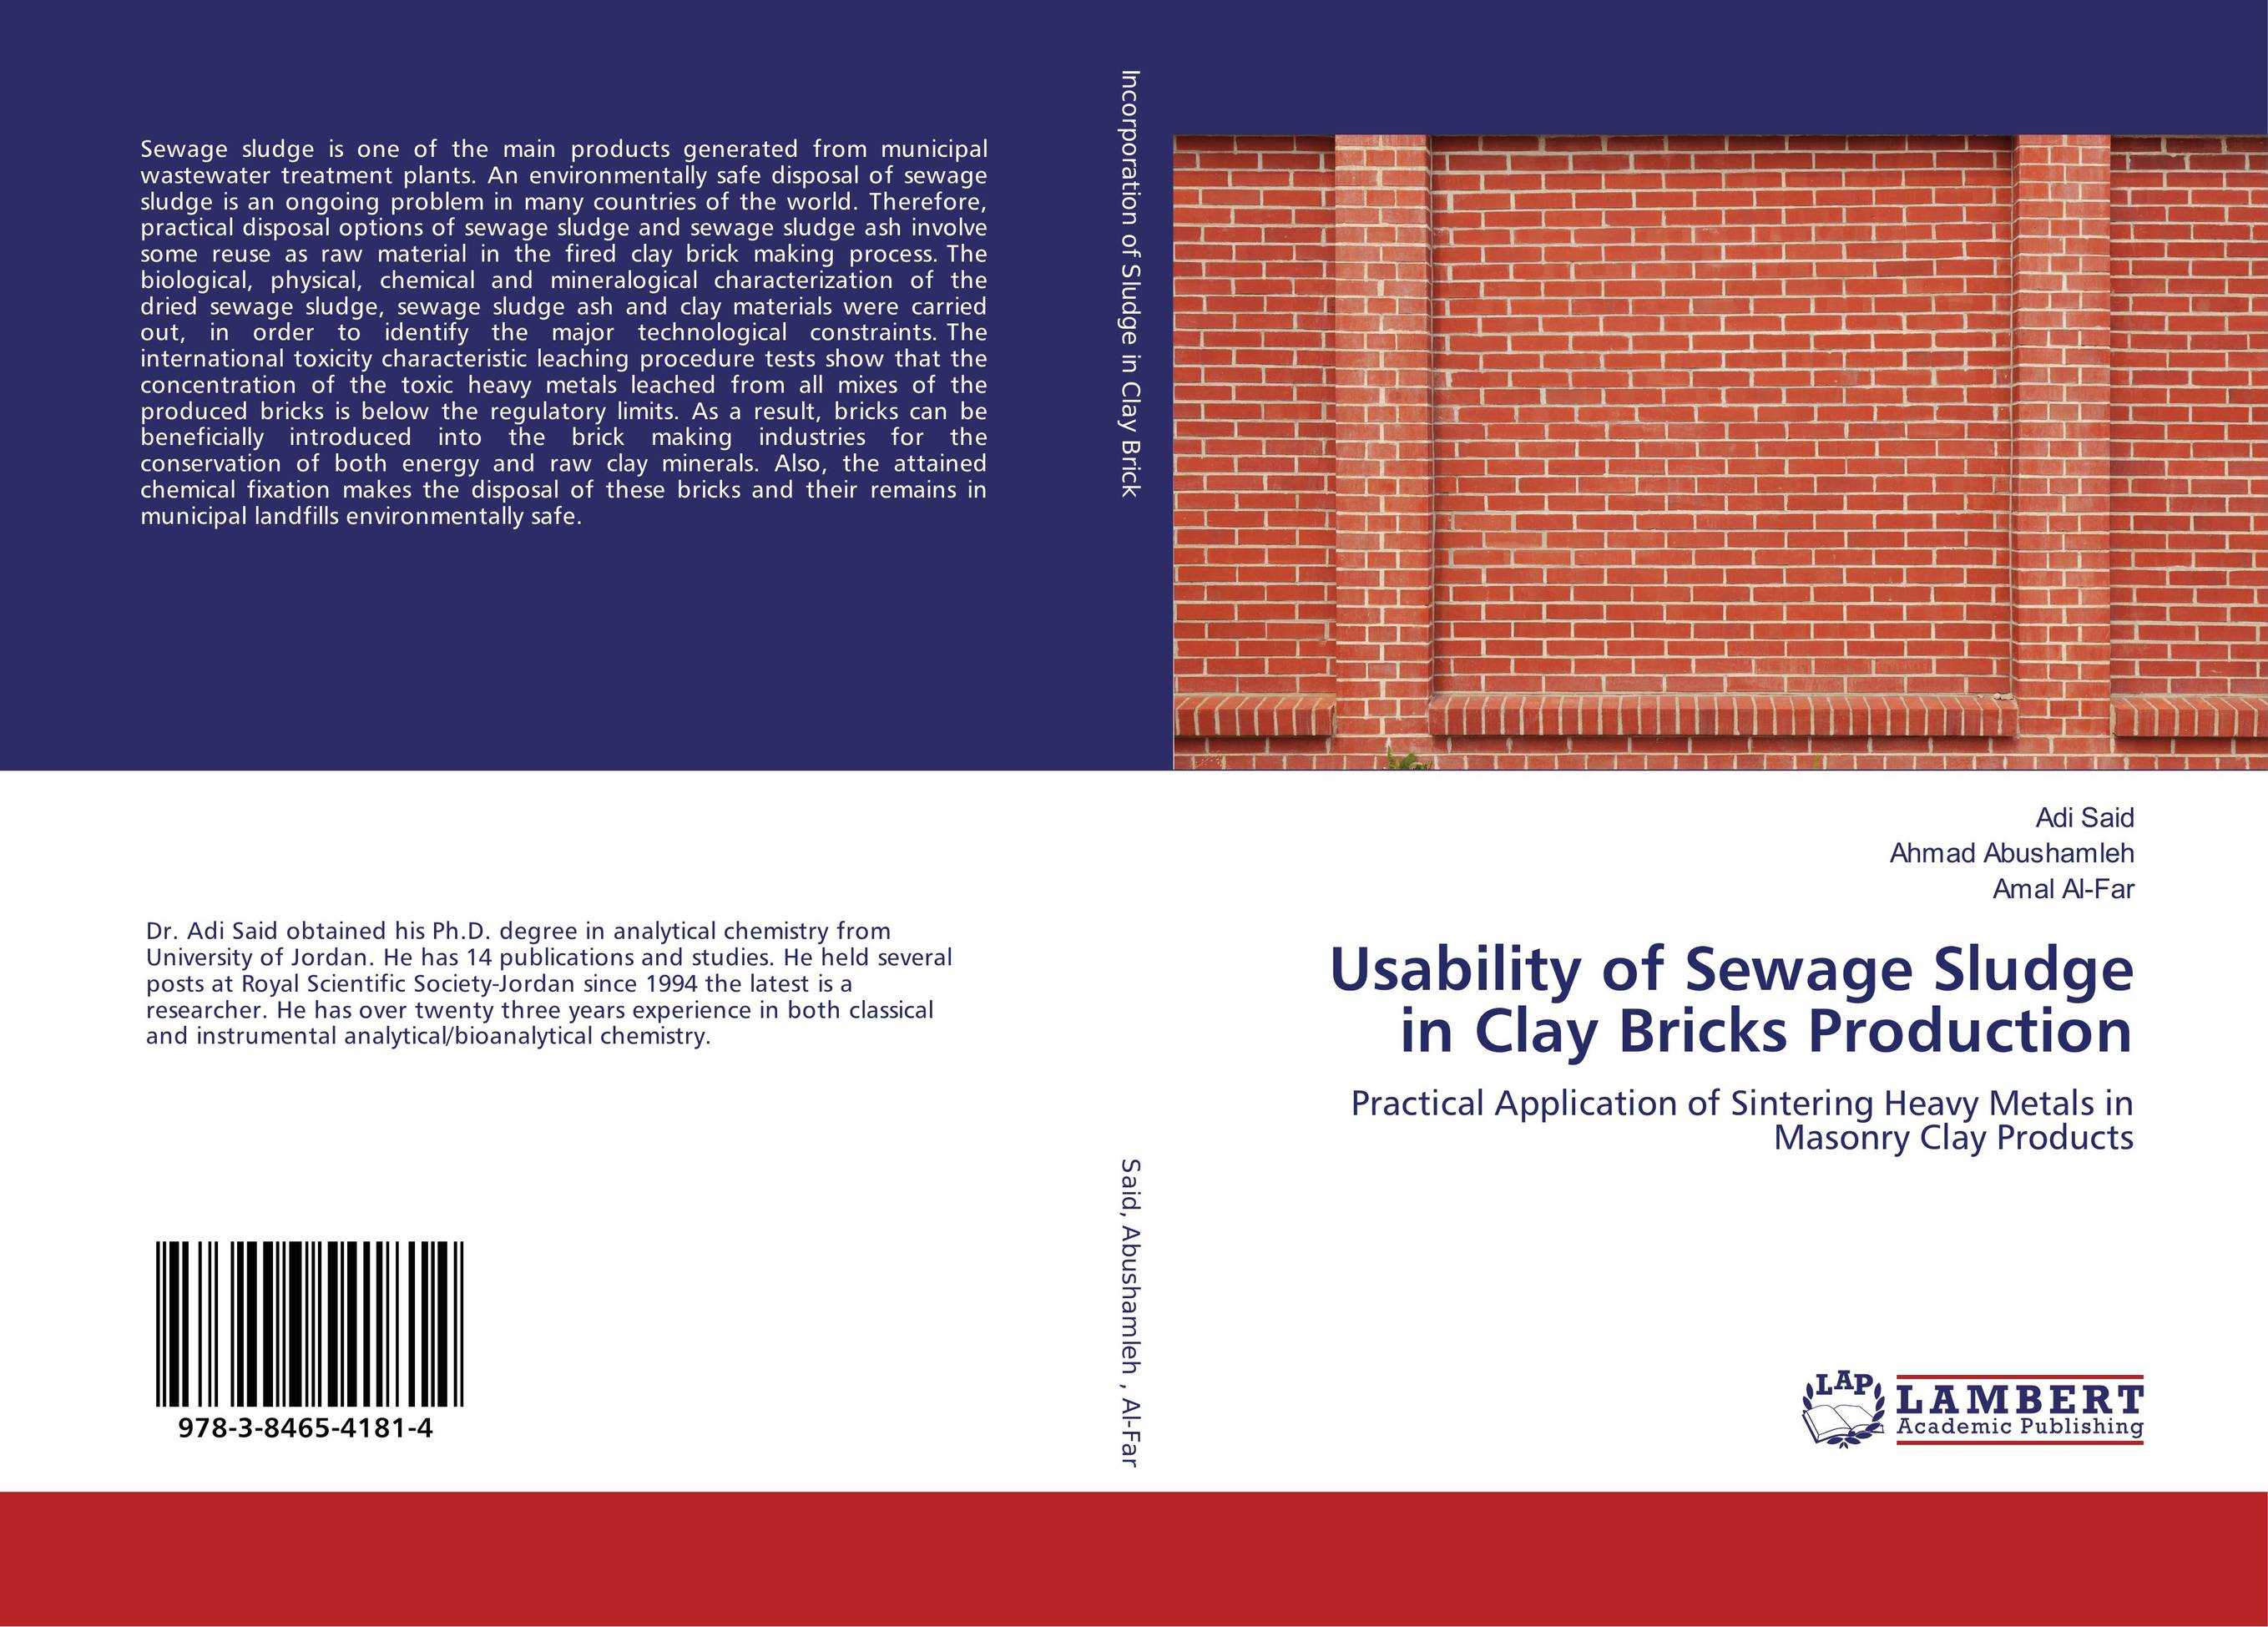 sewage sludge bricks thesis Prouty, m f, sludge amended brick manufacture as an ultimate disposal method, thesis presented to the university of maryland, at college park, maryland, in 1980, in partial fulfillment of the requirements for the degree of master of science.